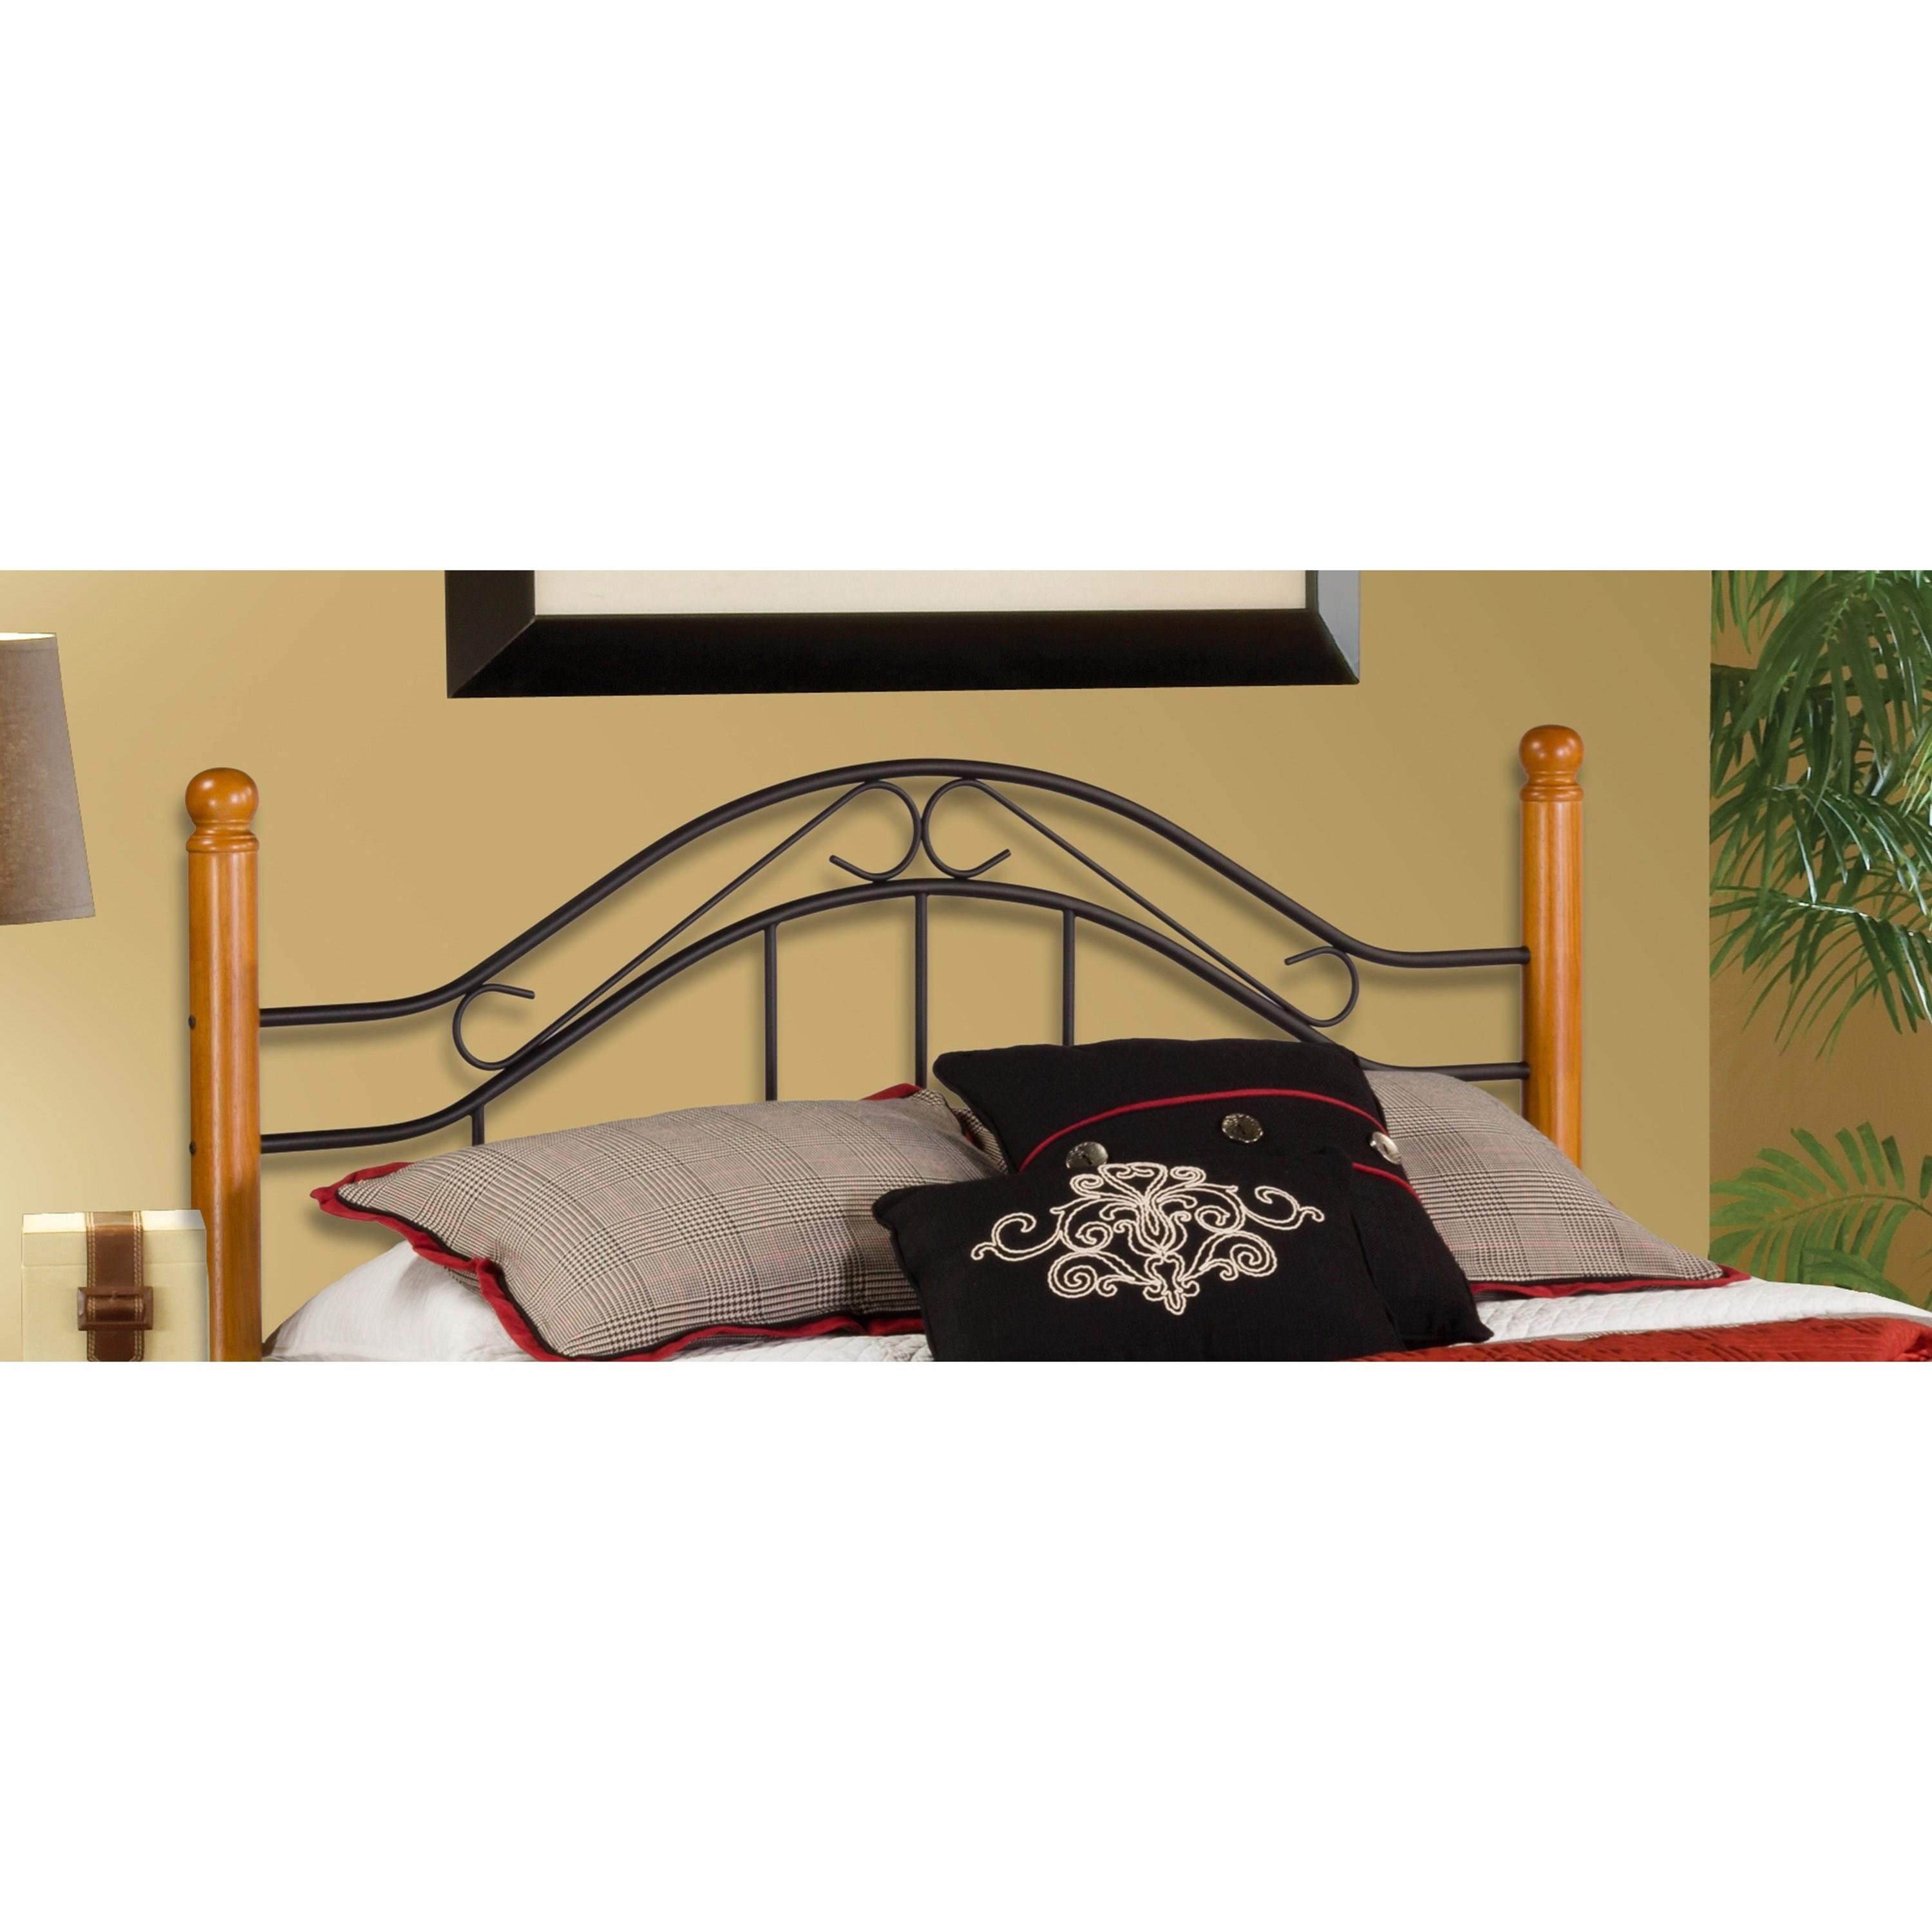 Wood Beds Full/Queen Headboard at Ruby Gordon Home